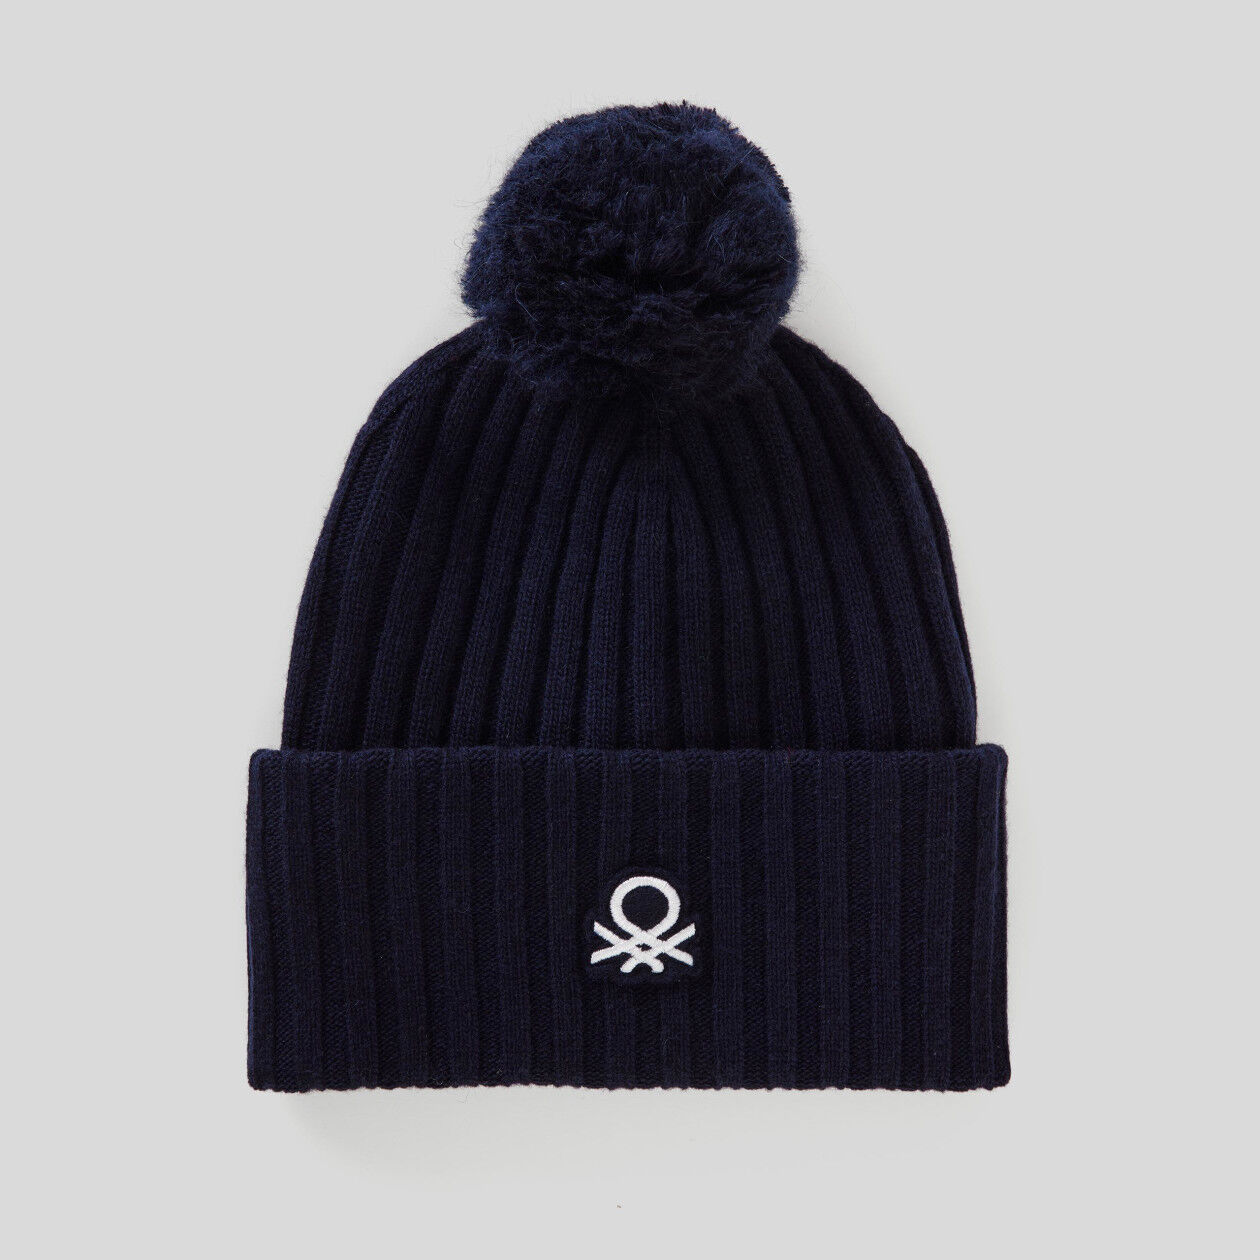 Hat with logo and pom pom